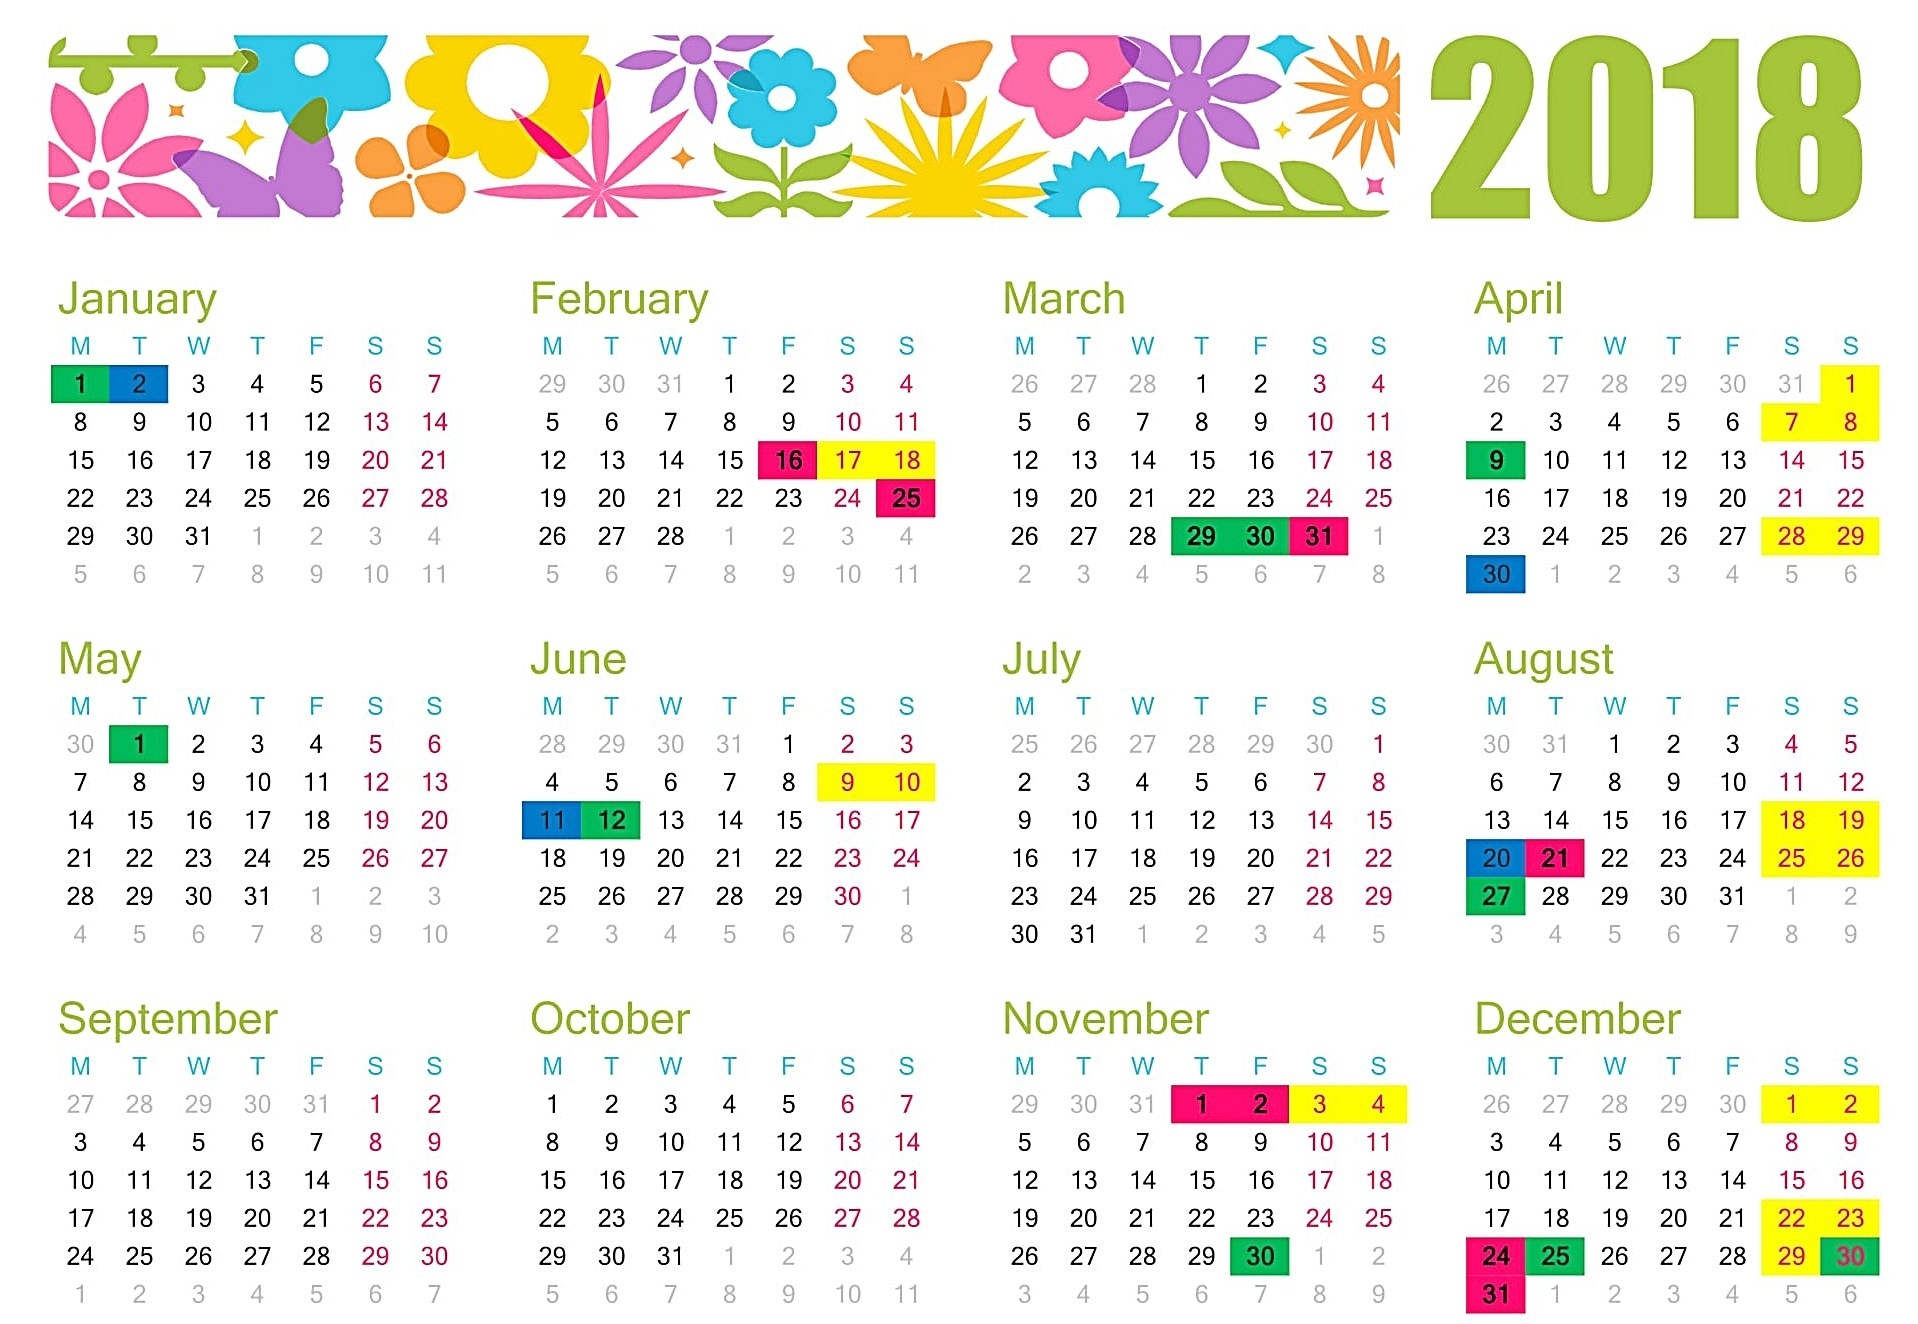 November 2018 Holidays Philippines - Free August 2019-Holidays In Philippines Printable